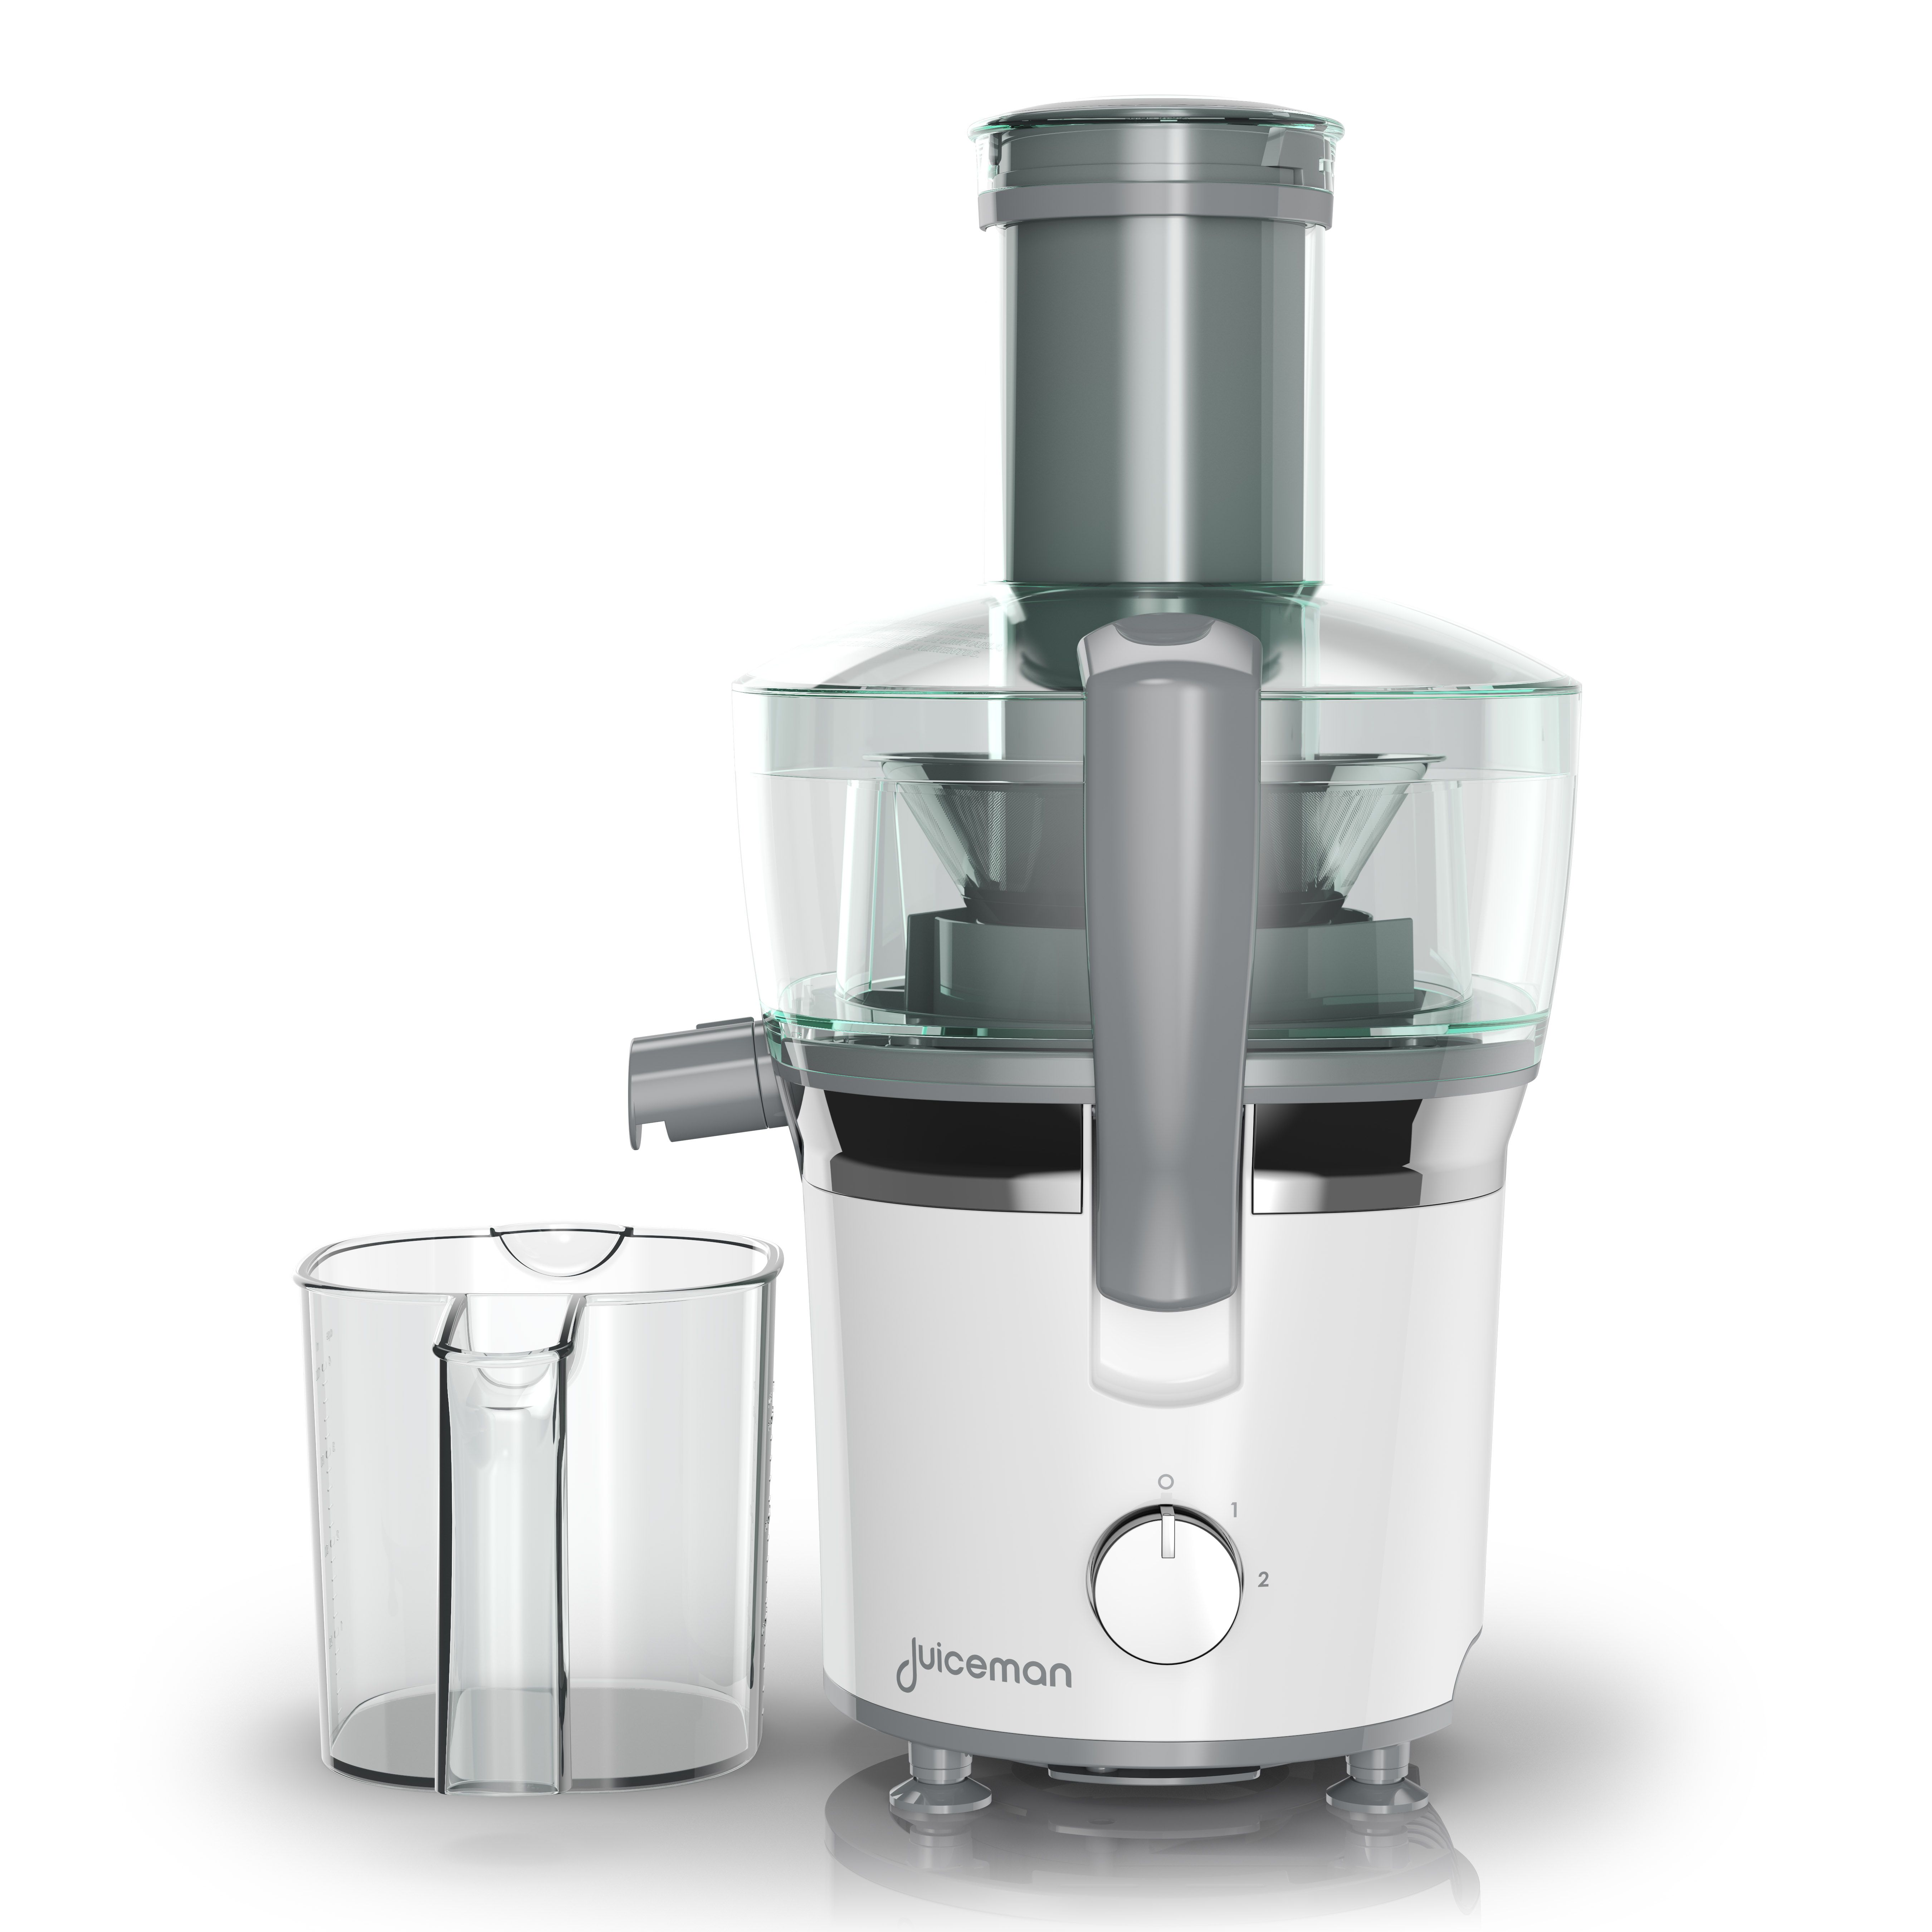 Juiceman Powerful Plus Compact Juicer with Attachment, White